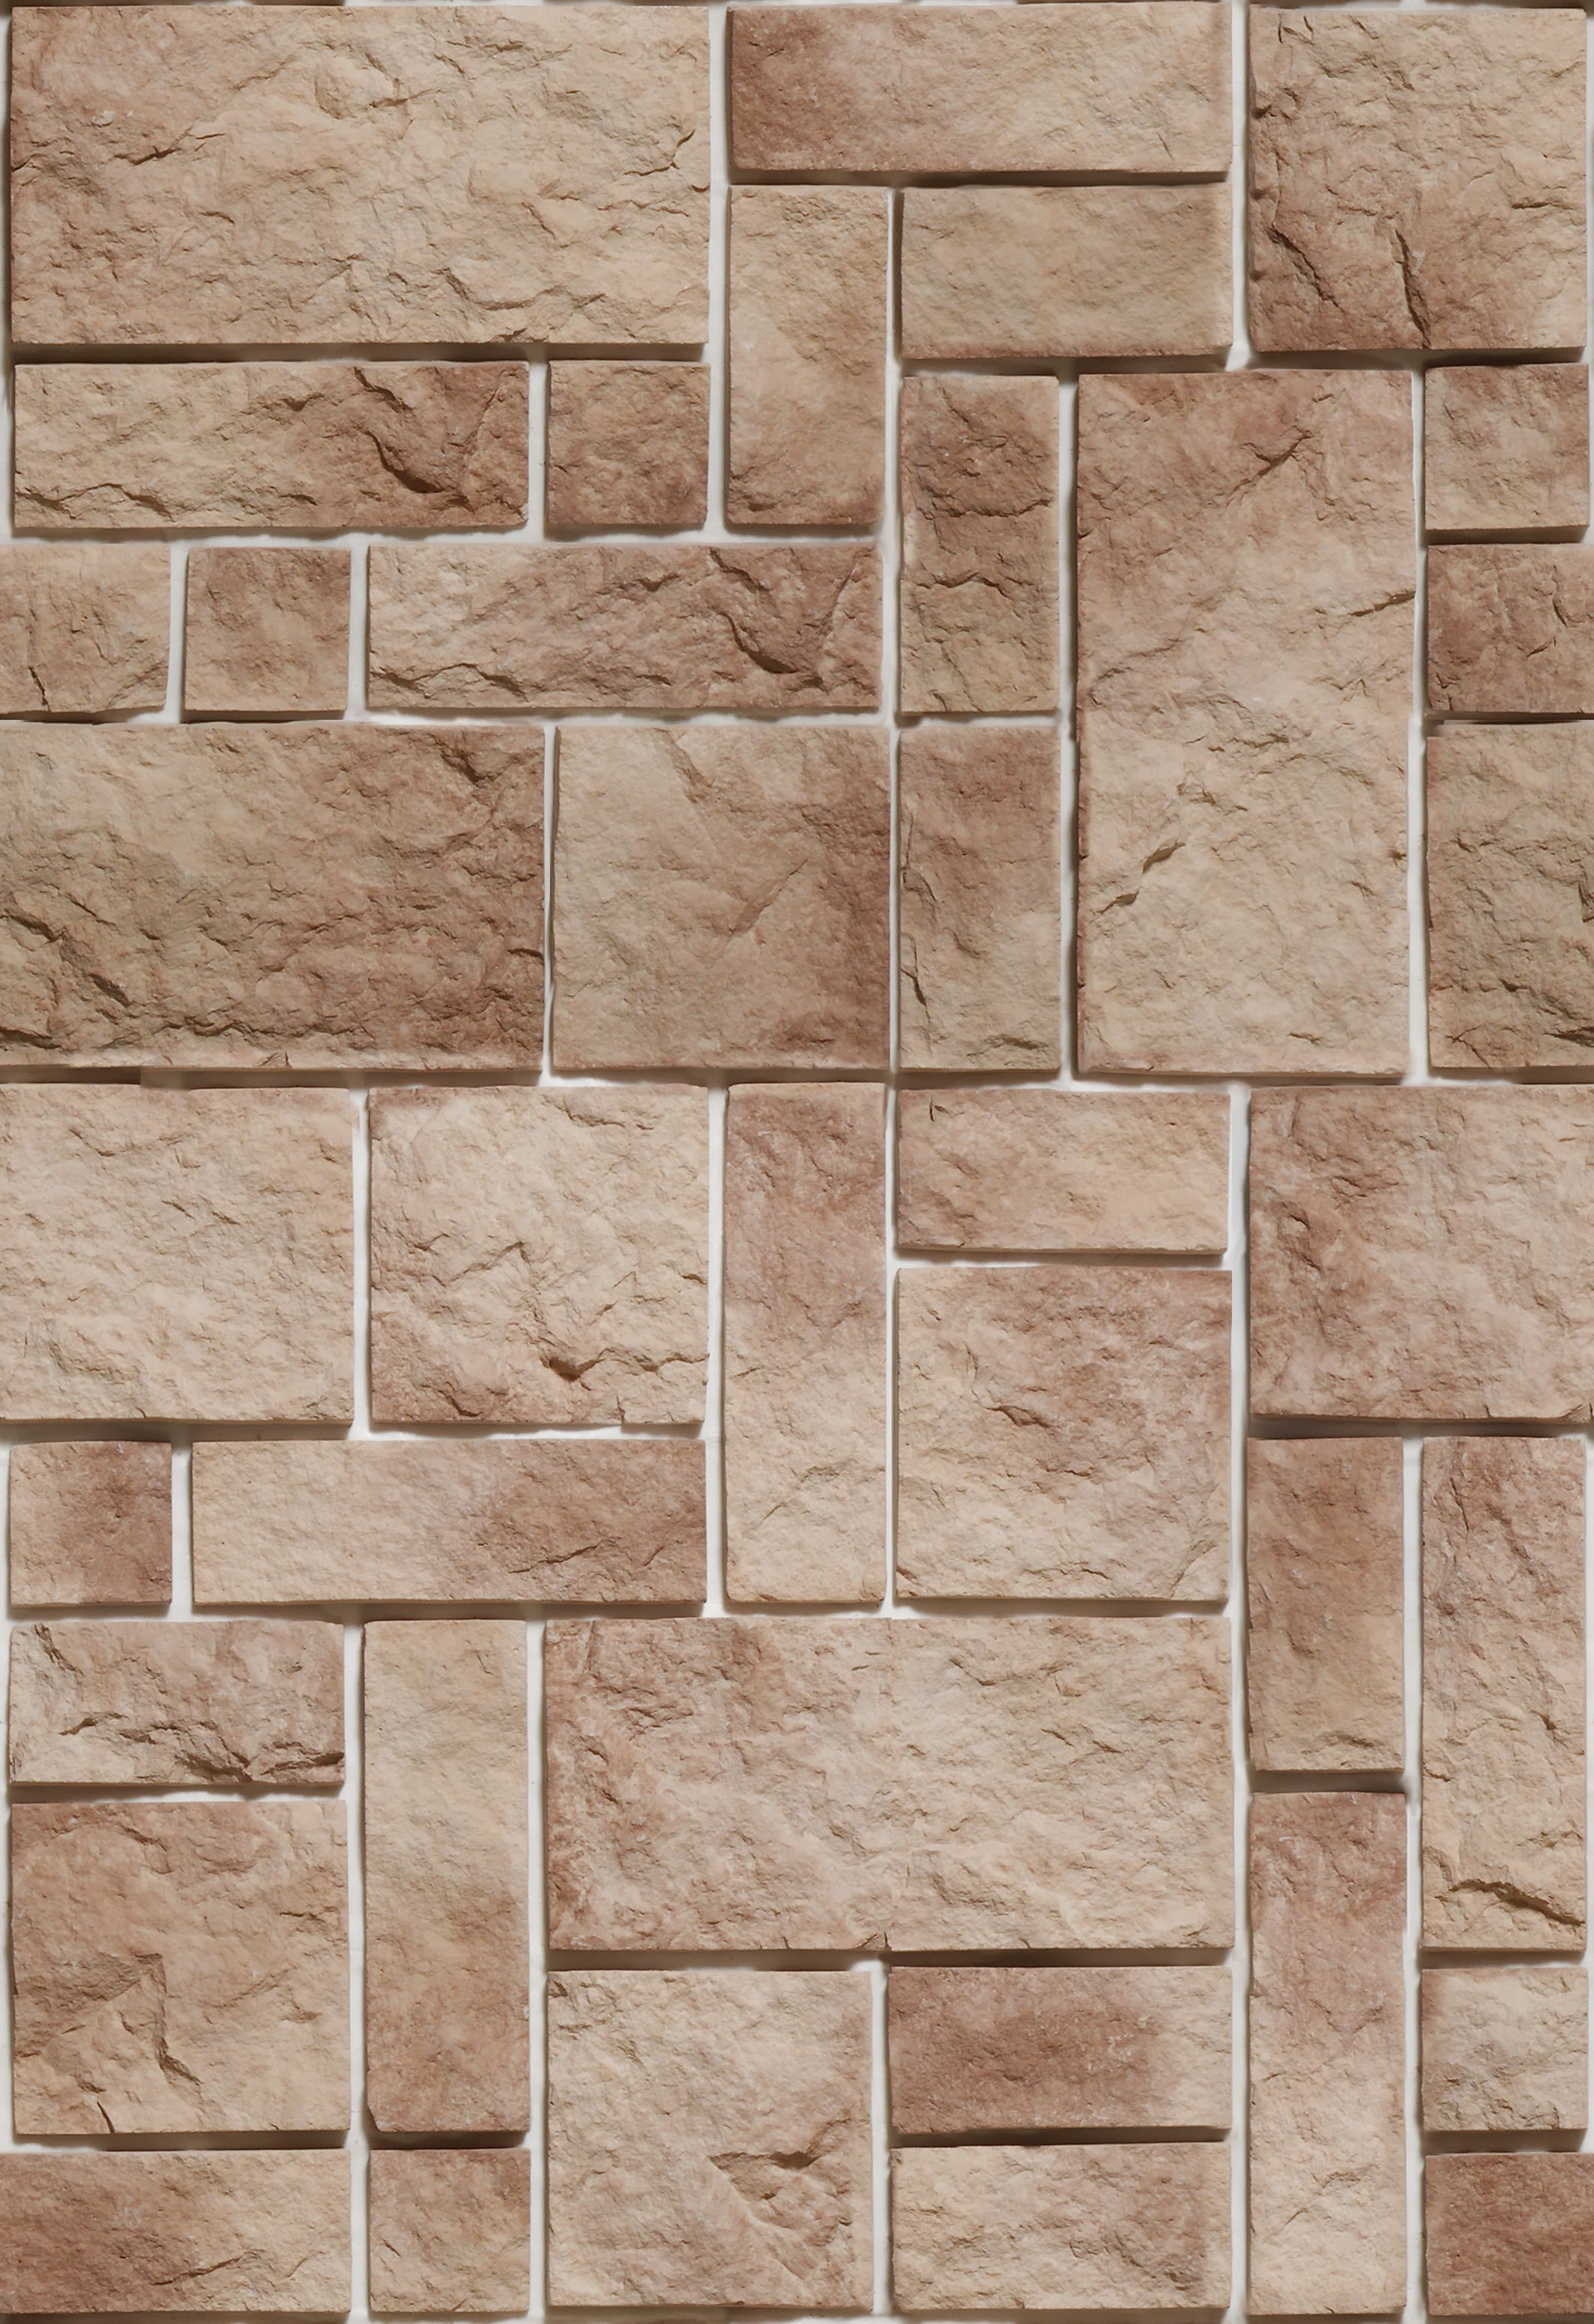 Super Download Texture Stone Hewn Tile Texture Wall Download Photo Largest Home Design Picture Inspirations Pitcheantrous